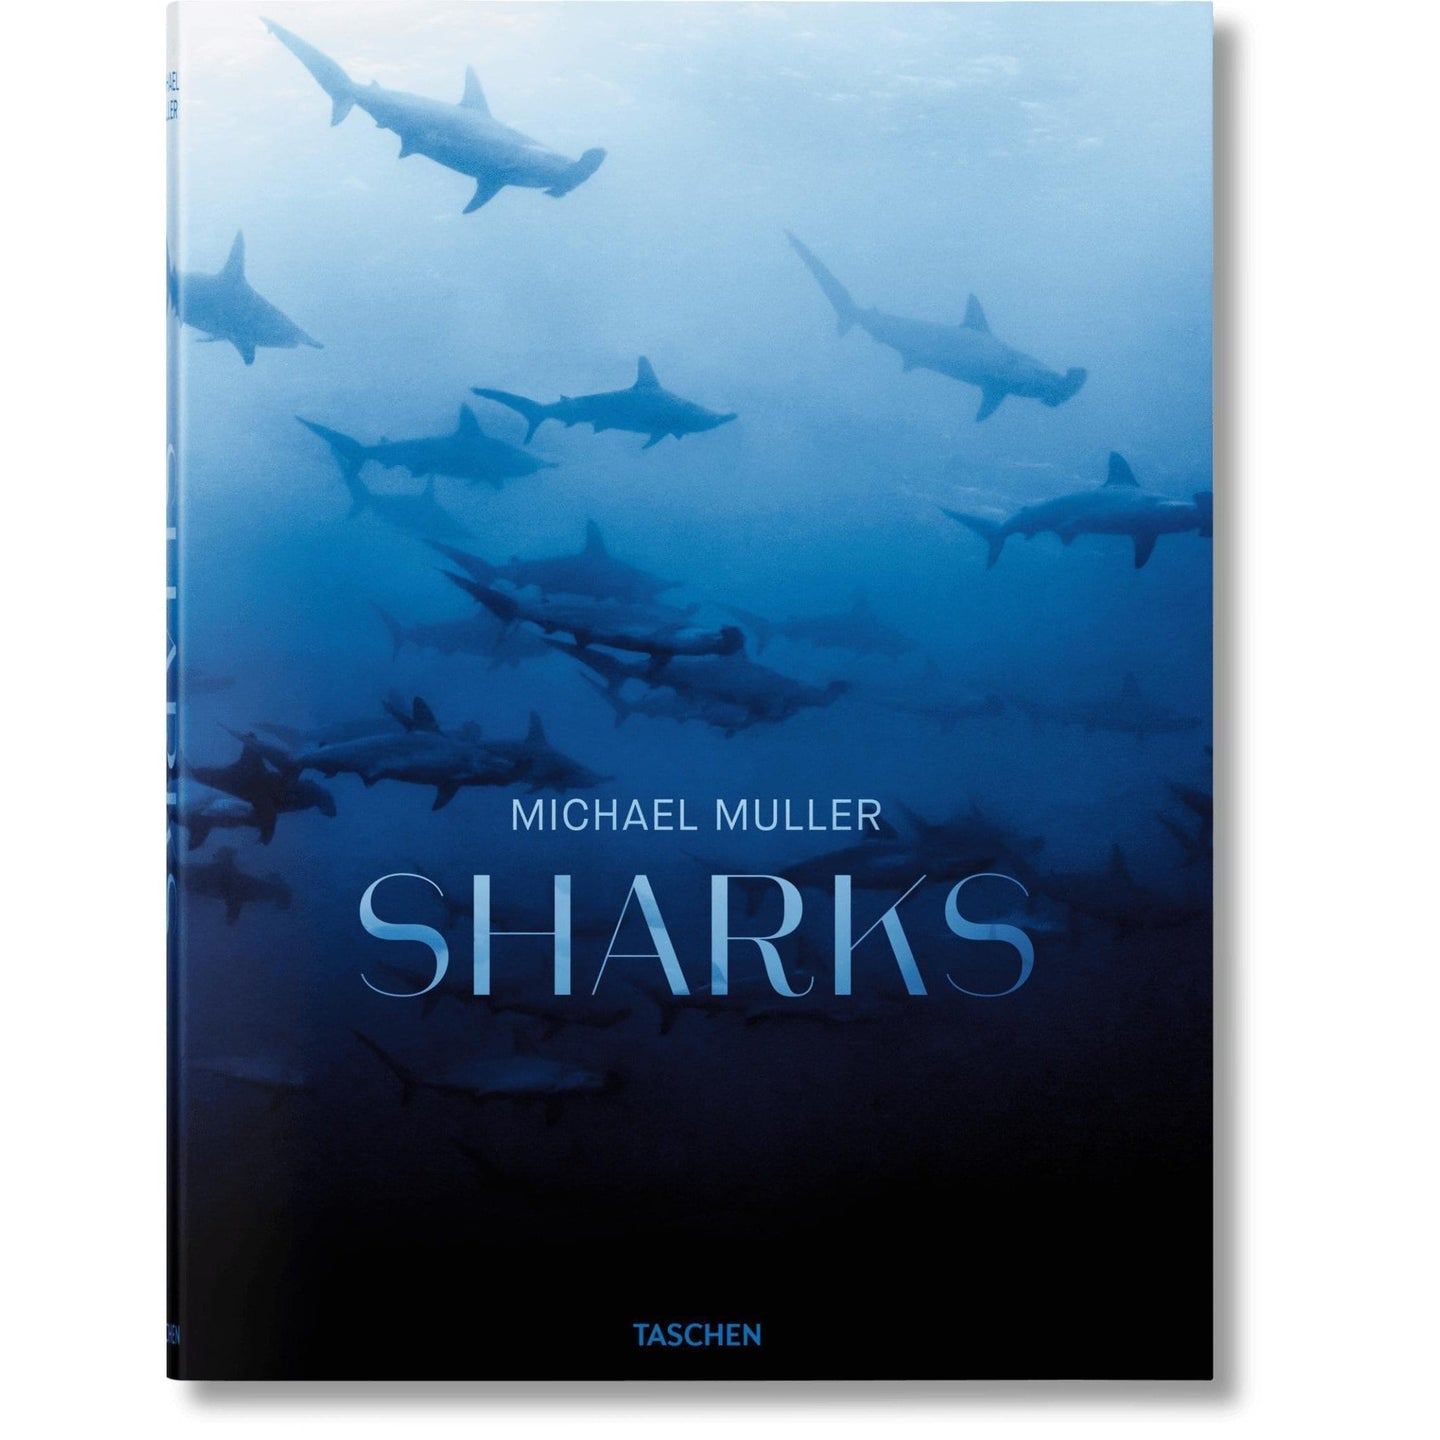 Taschen Michael Muller. Sharks. Face-to-Face with the Ocean's Endangered Predator / Neighborhood Goods